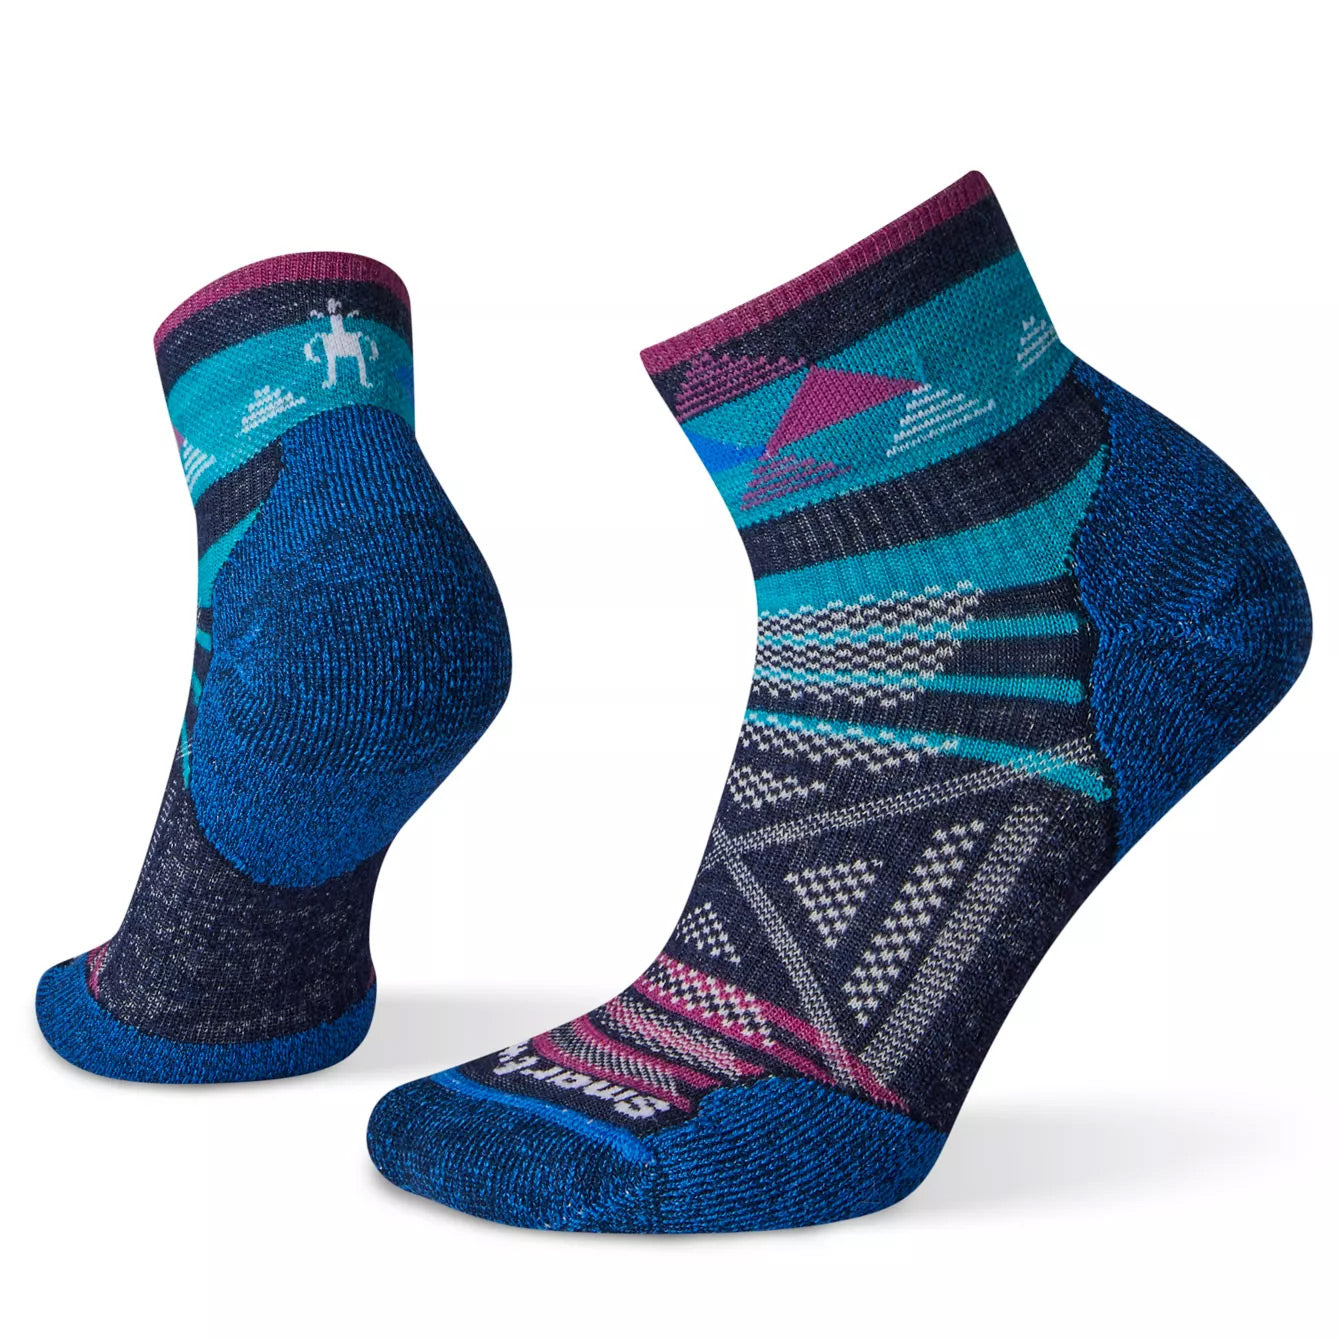 smart wool womens phD outdoor light pattern mini crew socks side and back view in color blue with purple and pink and white patterns